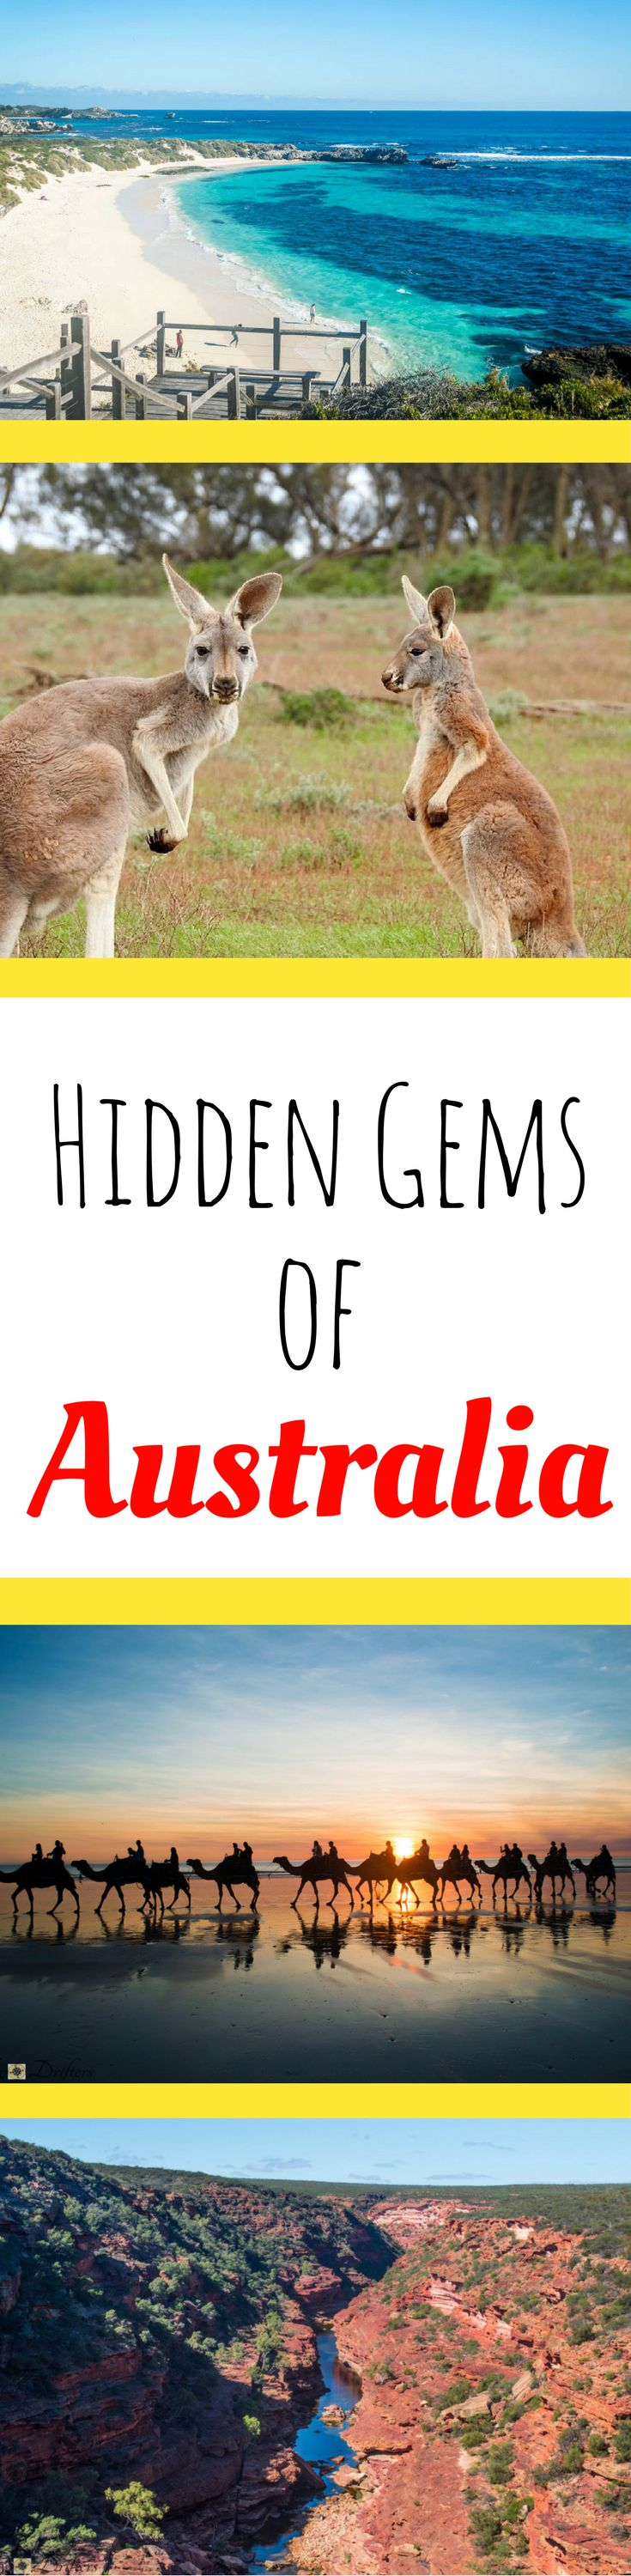 Hidden gems of Australia | Secret spots Australia | Australia travel guide | Where to go in Australia | What to See in Australia | Australia top sites